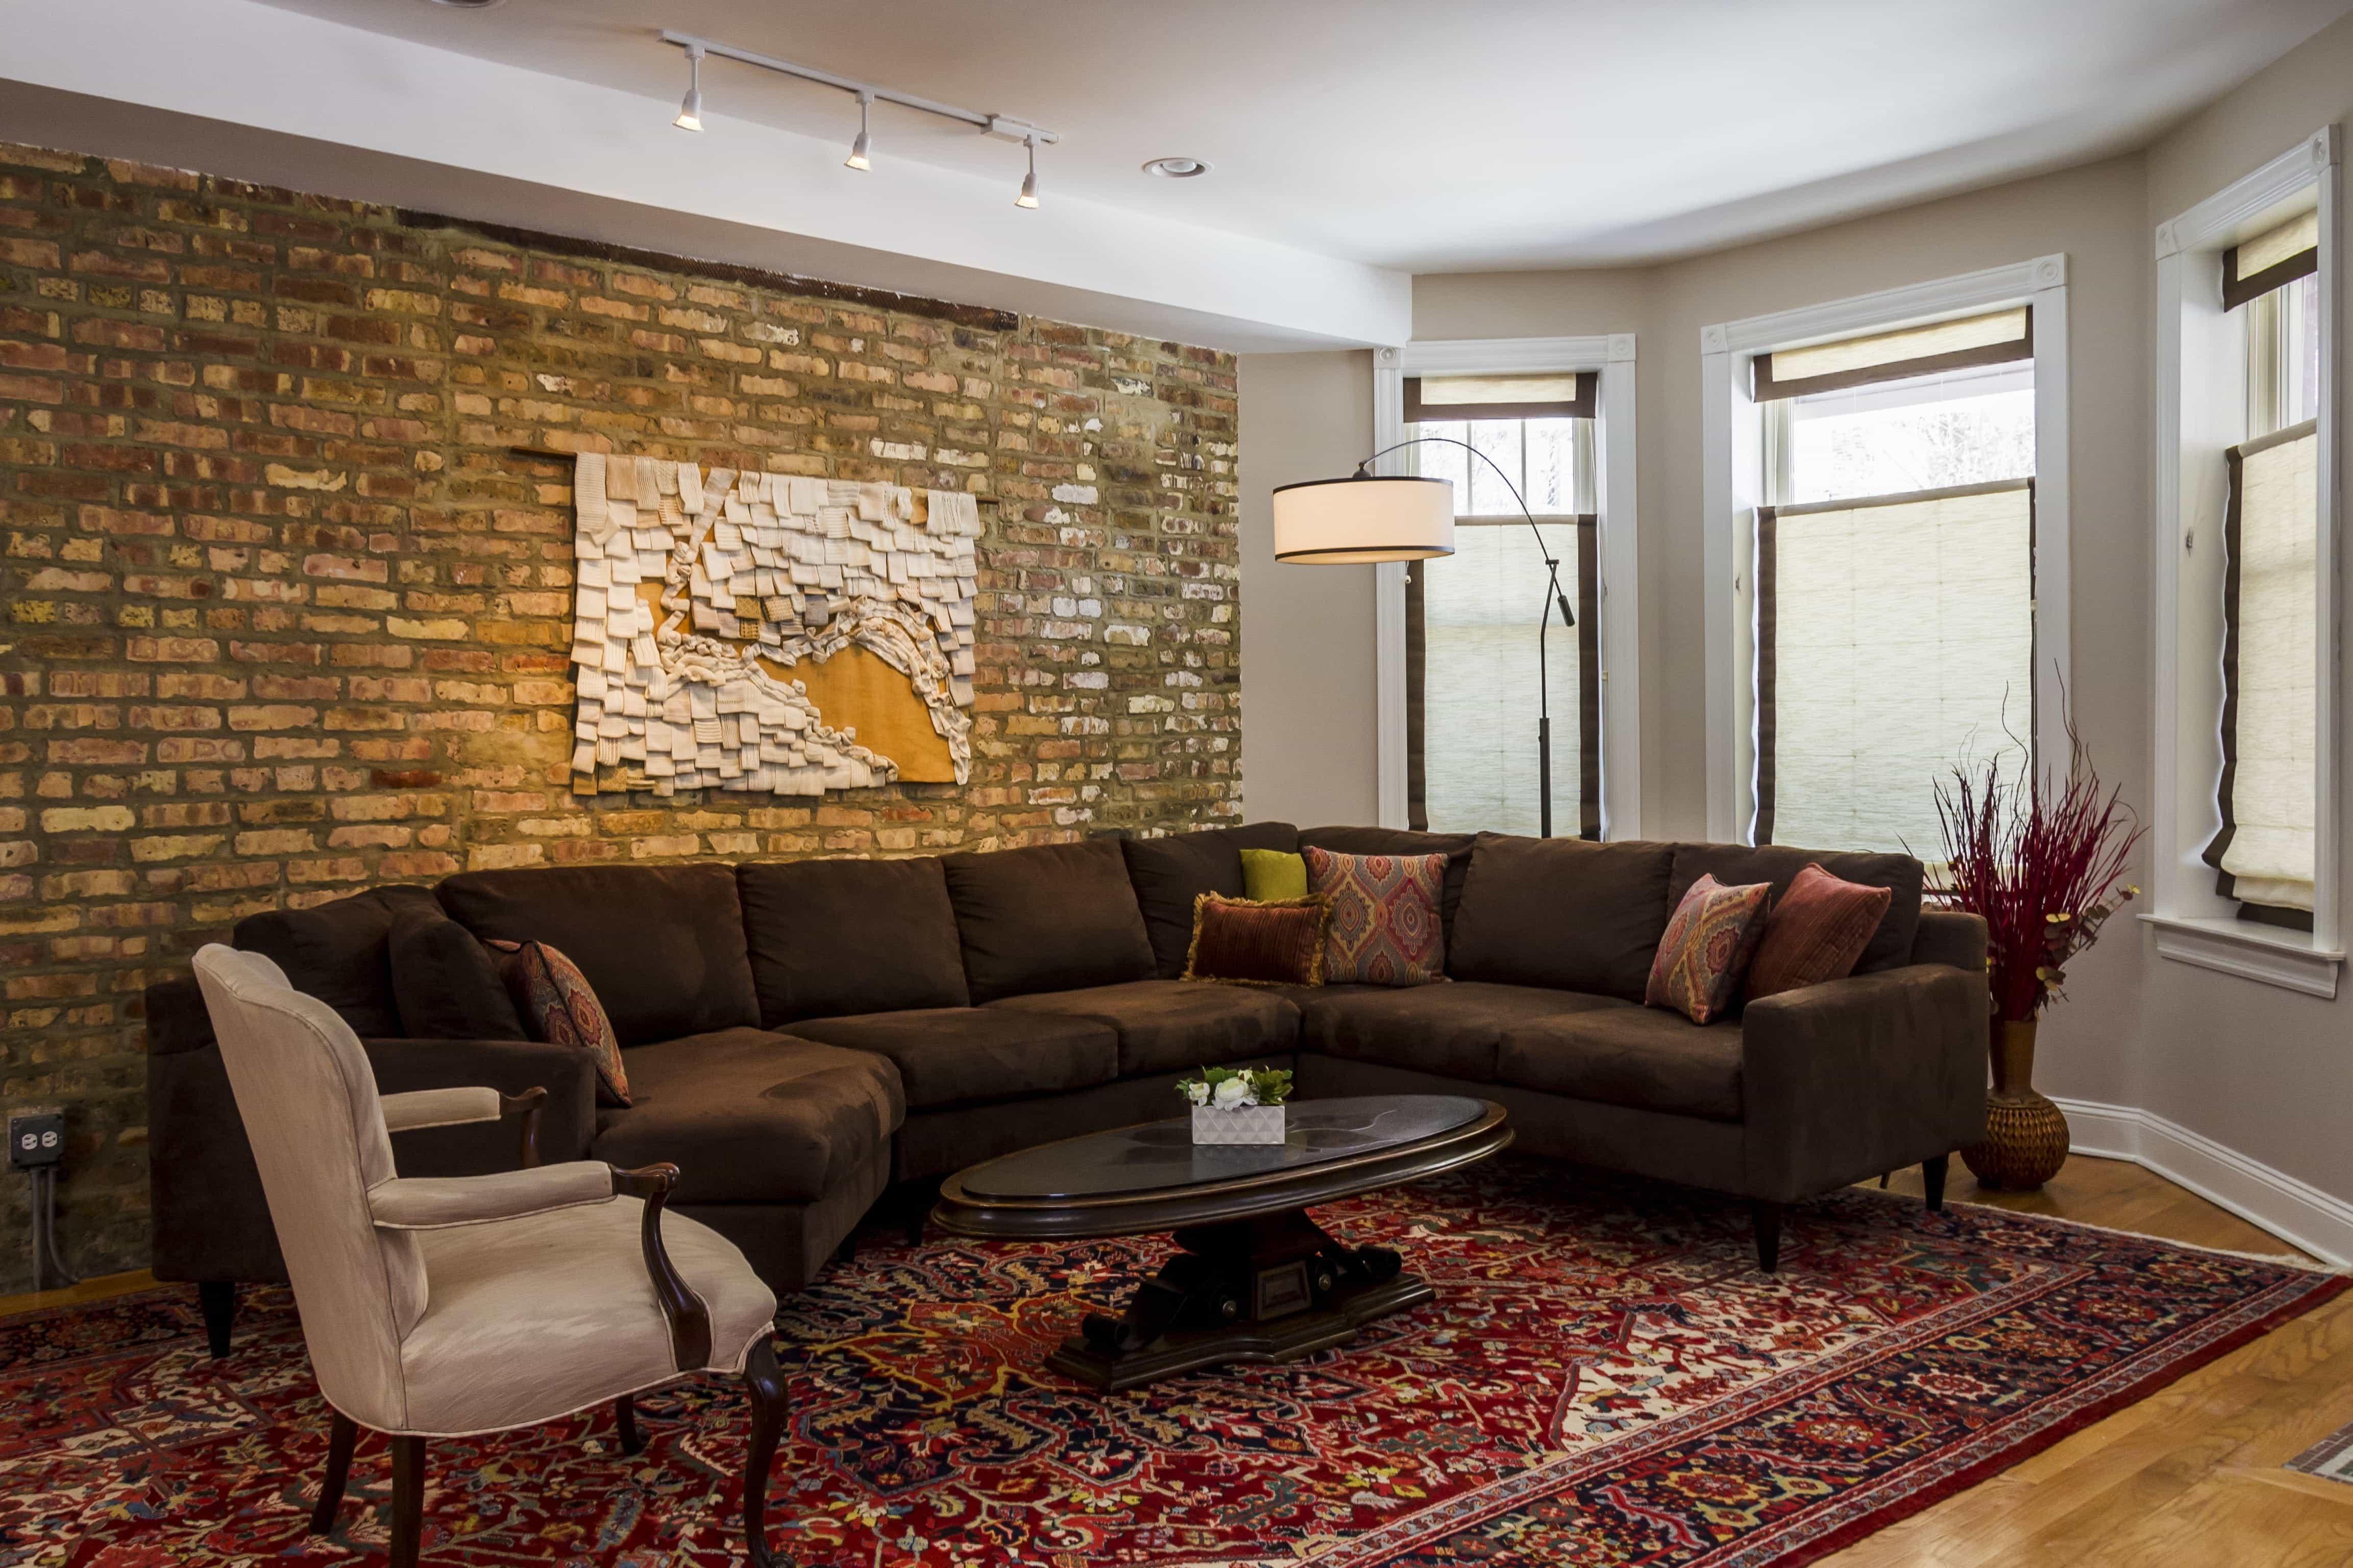 Contemporary Living Room With Brick Wall Feature (Image 6 of 30)